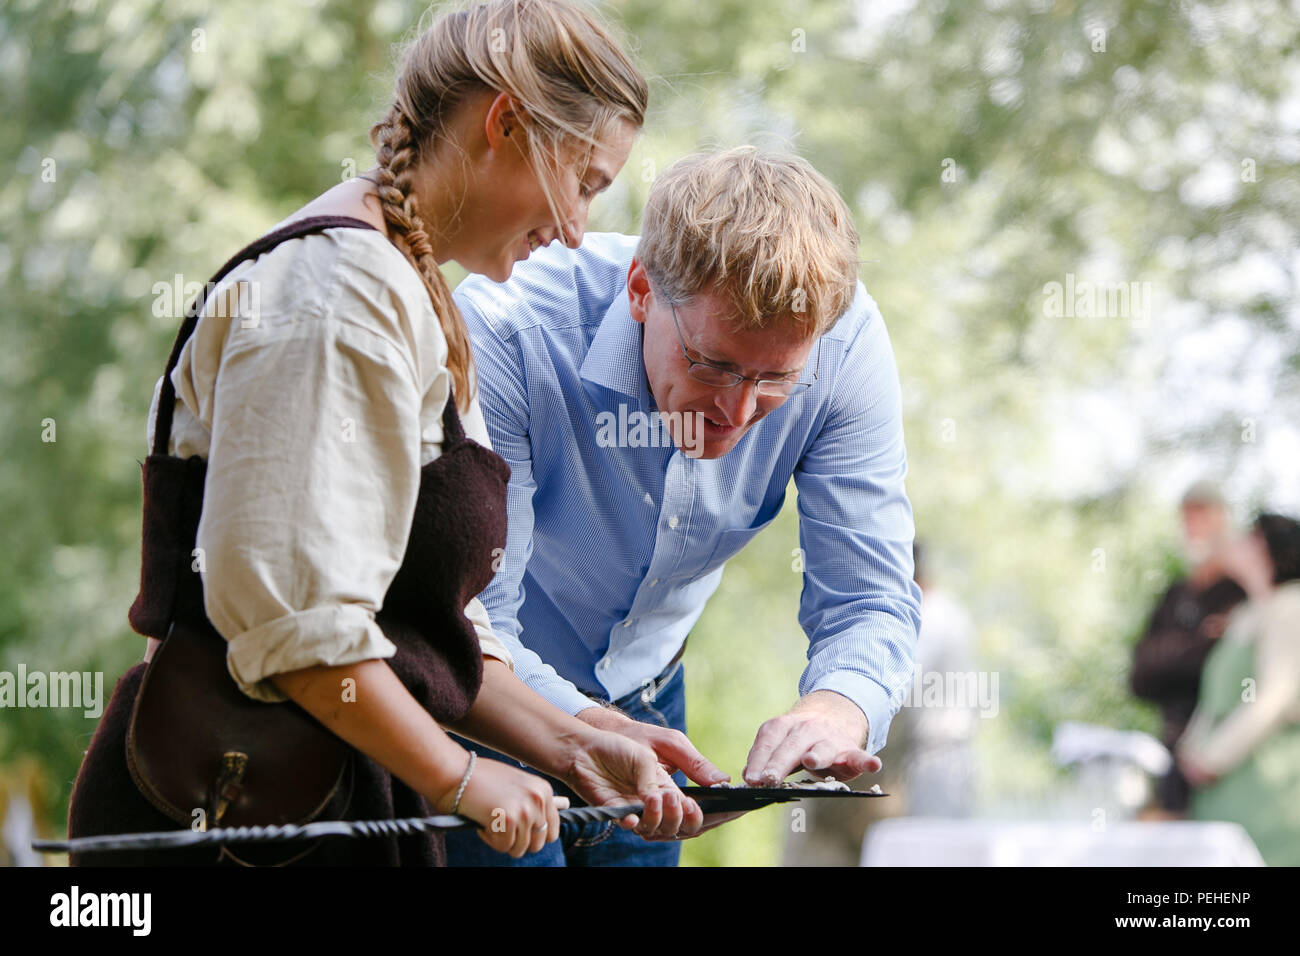 Busdorf, Germany. 16th Aug, 2018. Schleswig-Holstein's Prime Minister Daniel Guenther of the Christian Democratic Union (CDU) bakes bread with an extra. During his four-day summer trip, Guenther visited the Viking Museum Haithabu. Credit: Frank Molter/dpa/Alamy Live News - Stock Image